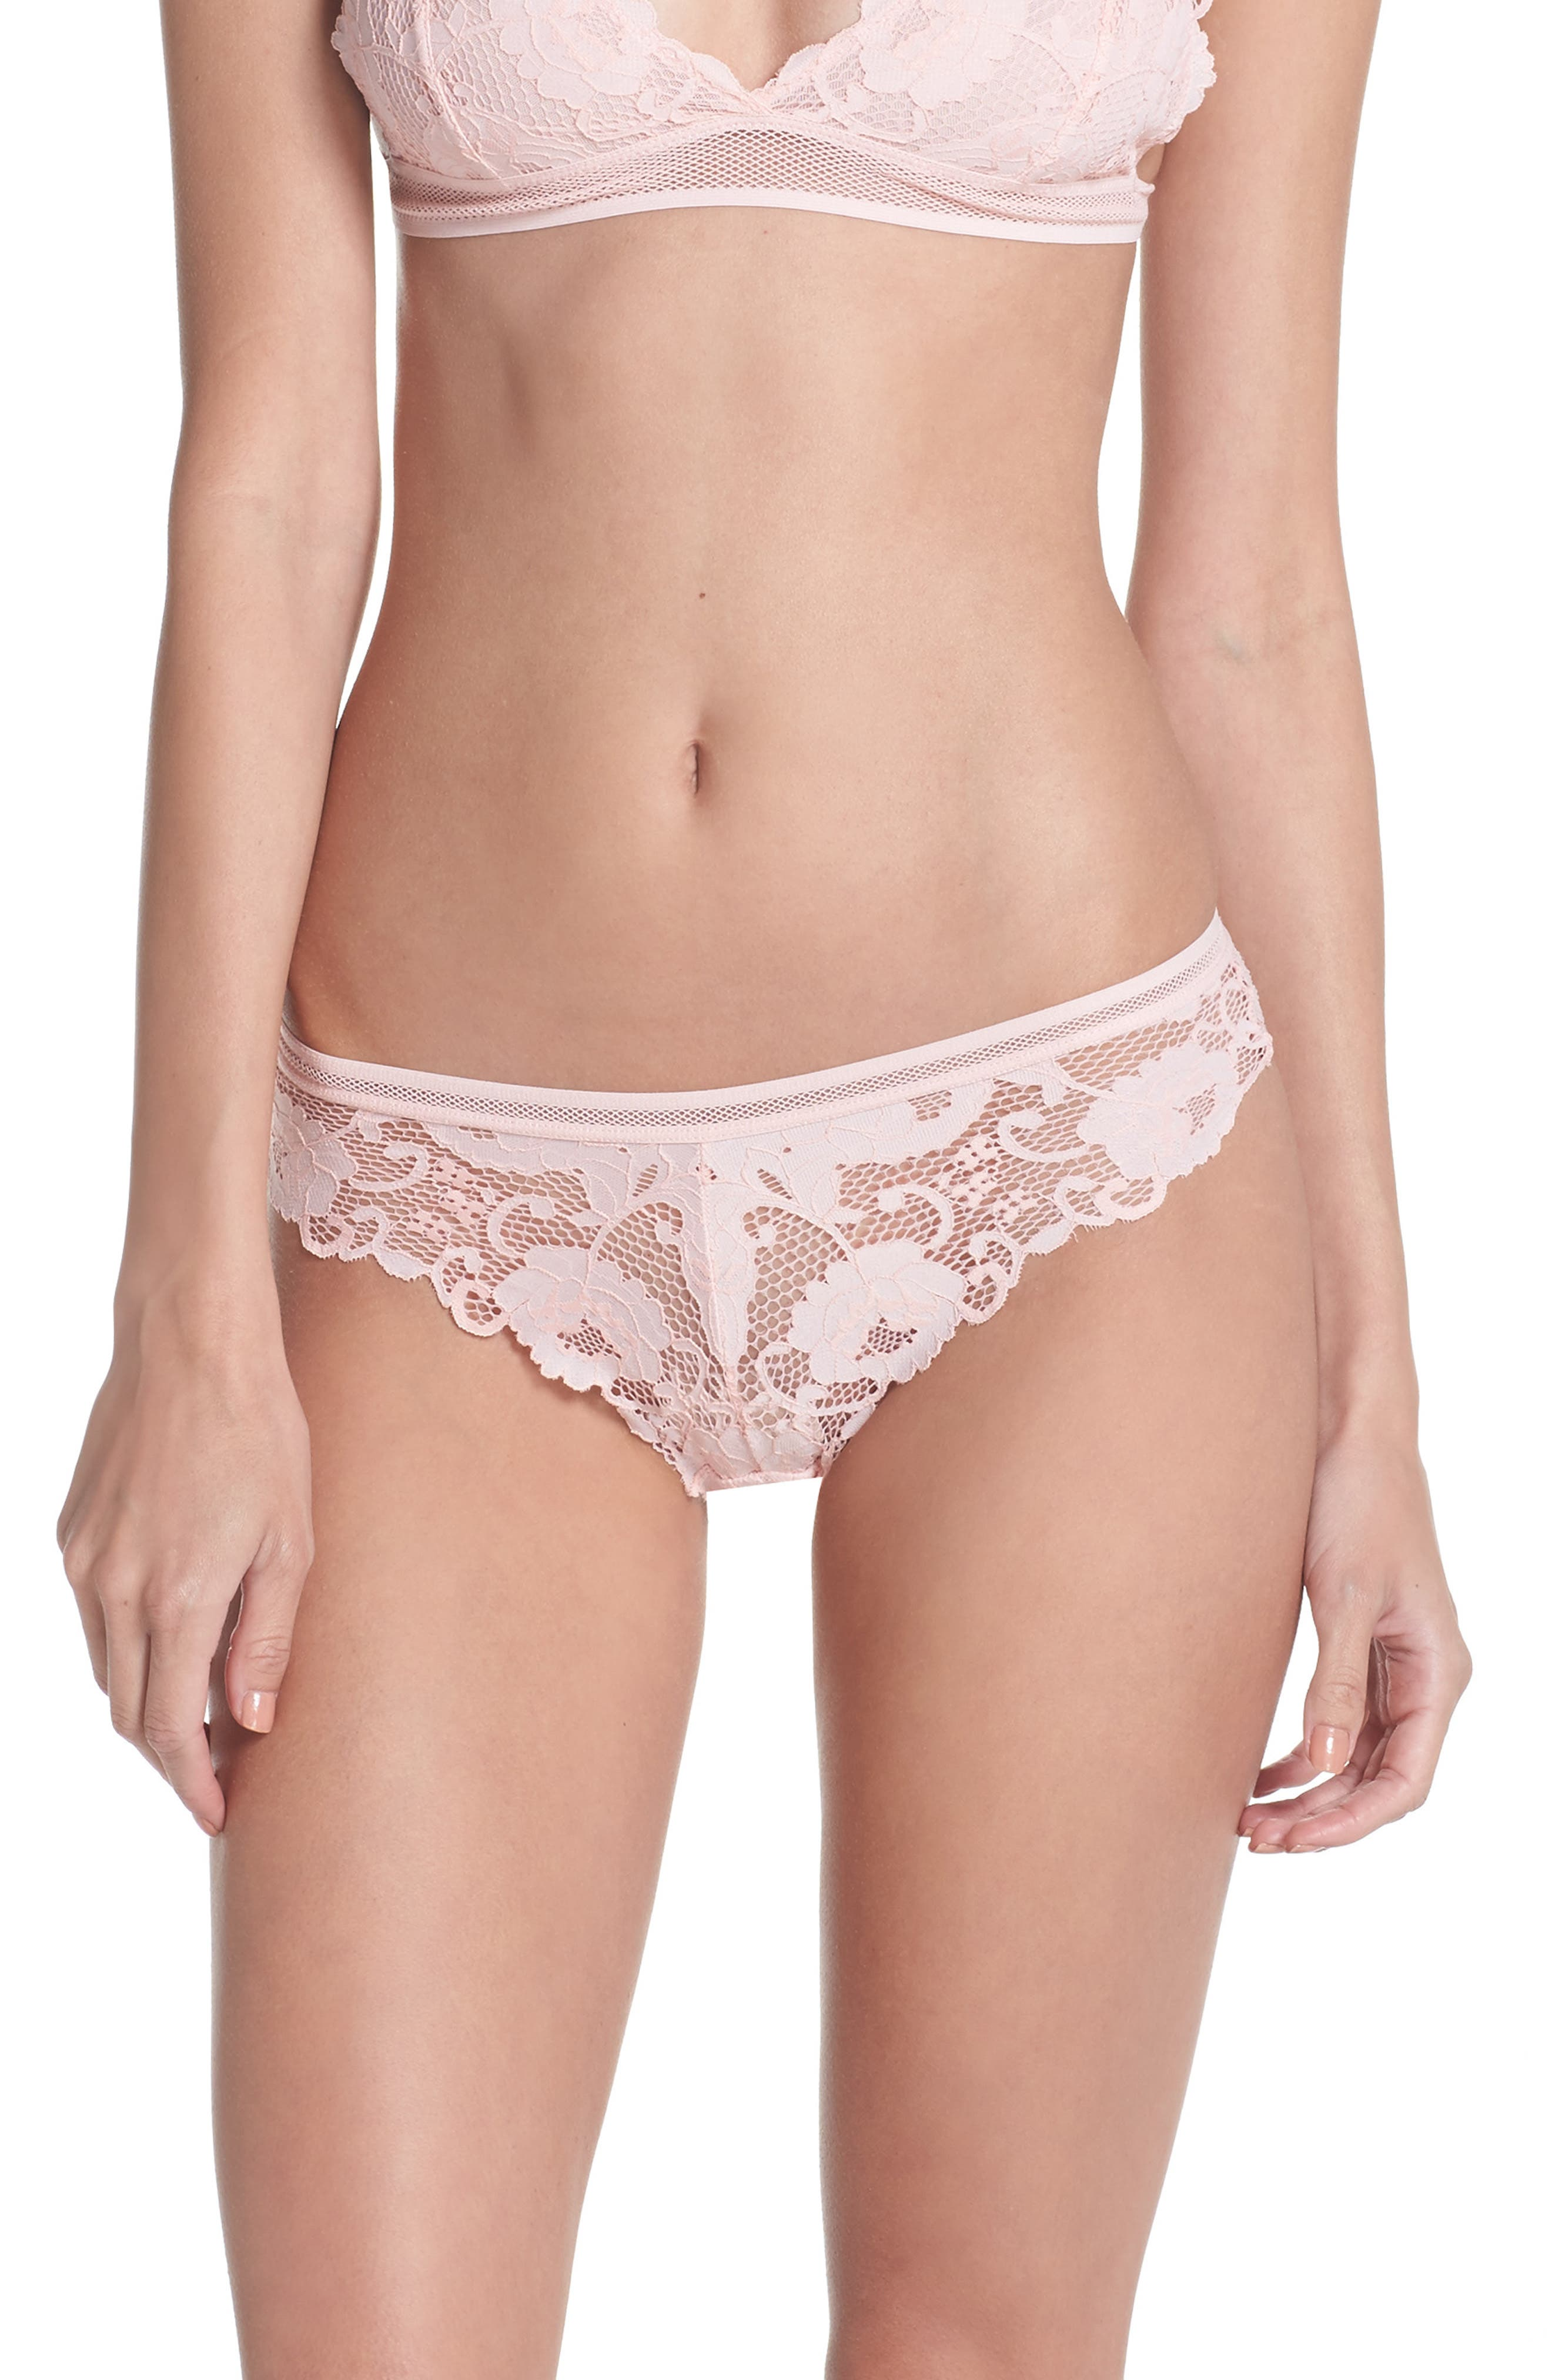 Alternate Image 1 Selected - Sam Edelman Lace Thong (3 for $33)